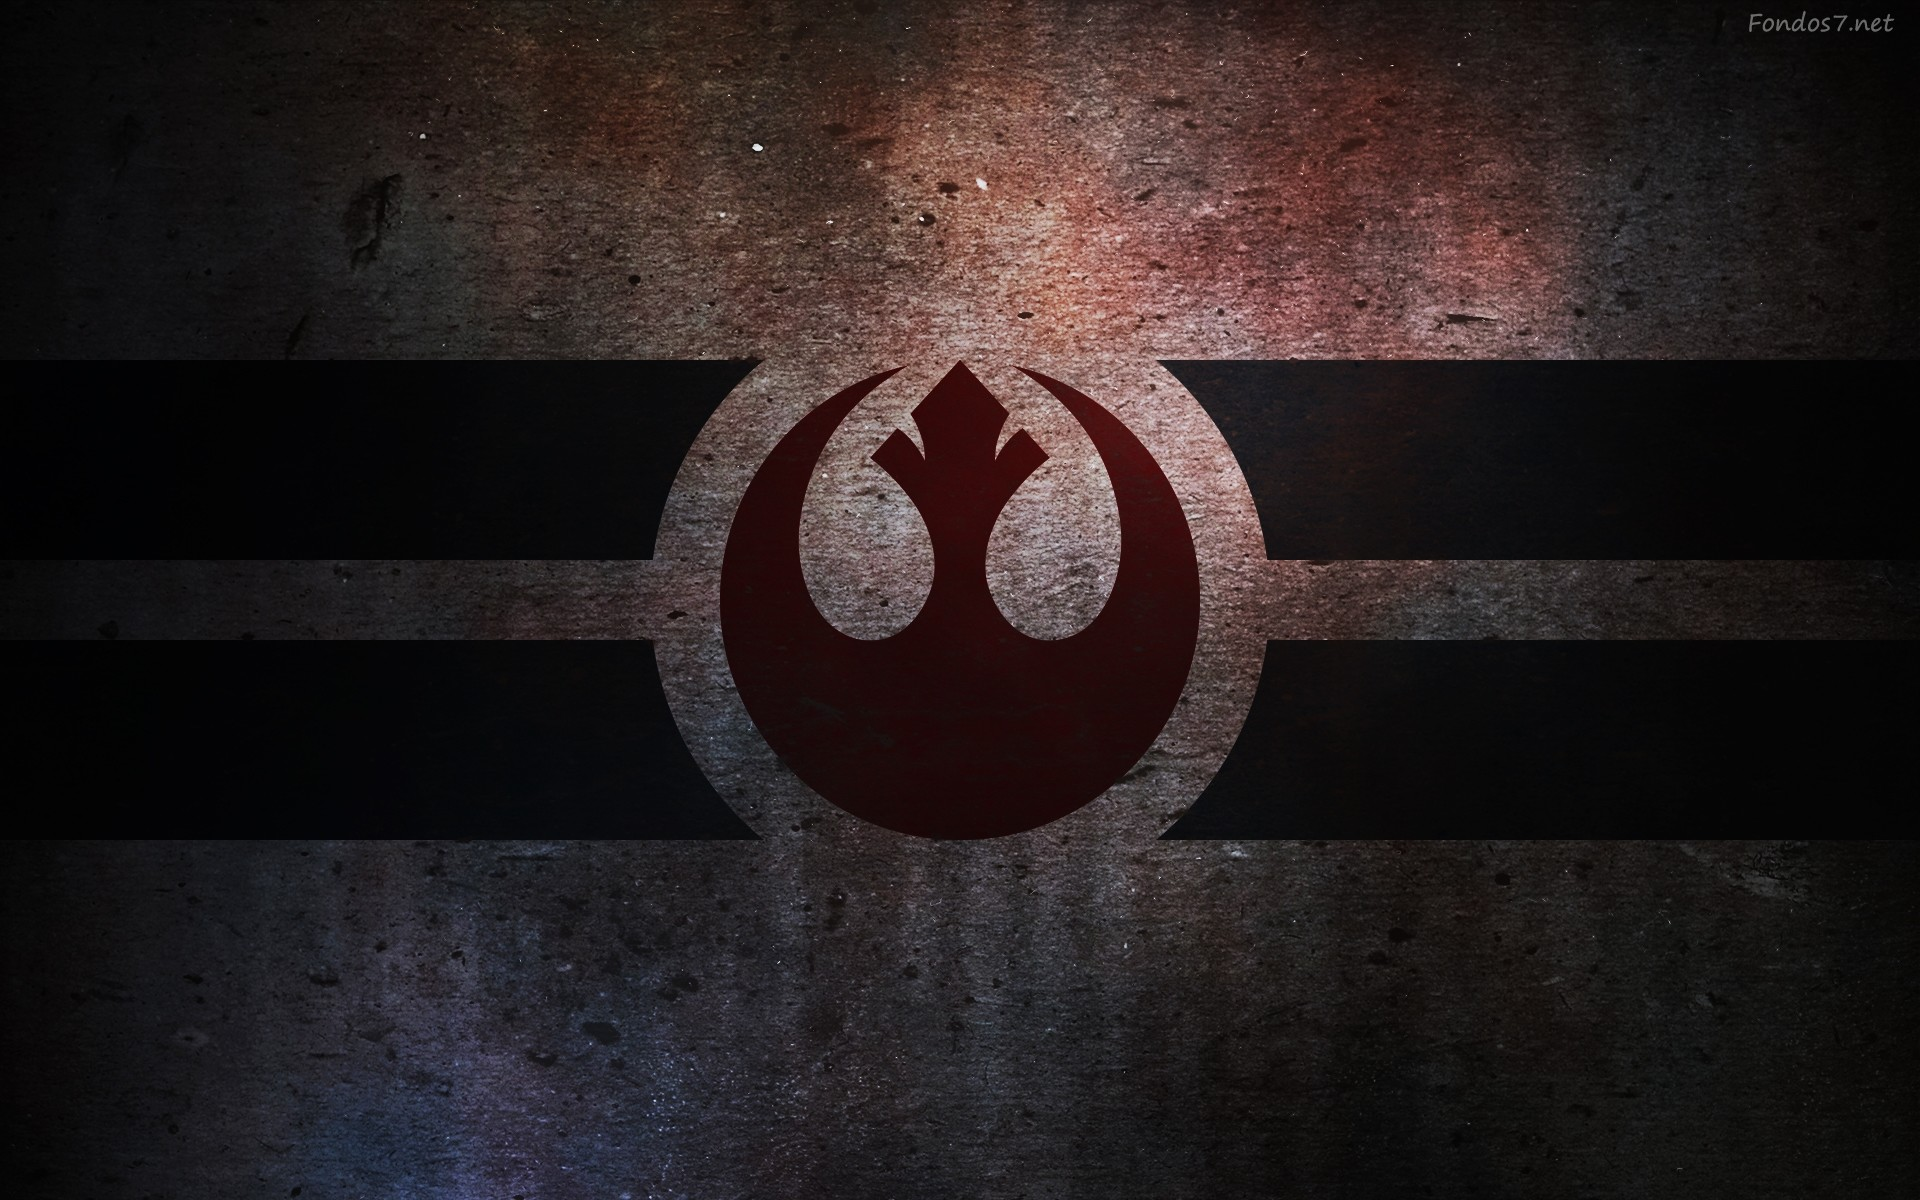 star wars live wallpaper for android ✓ hd wallpaper